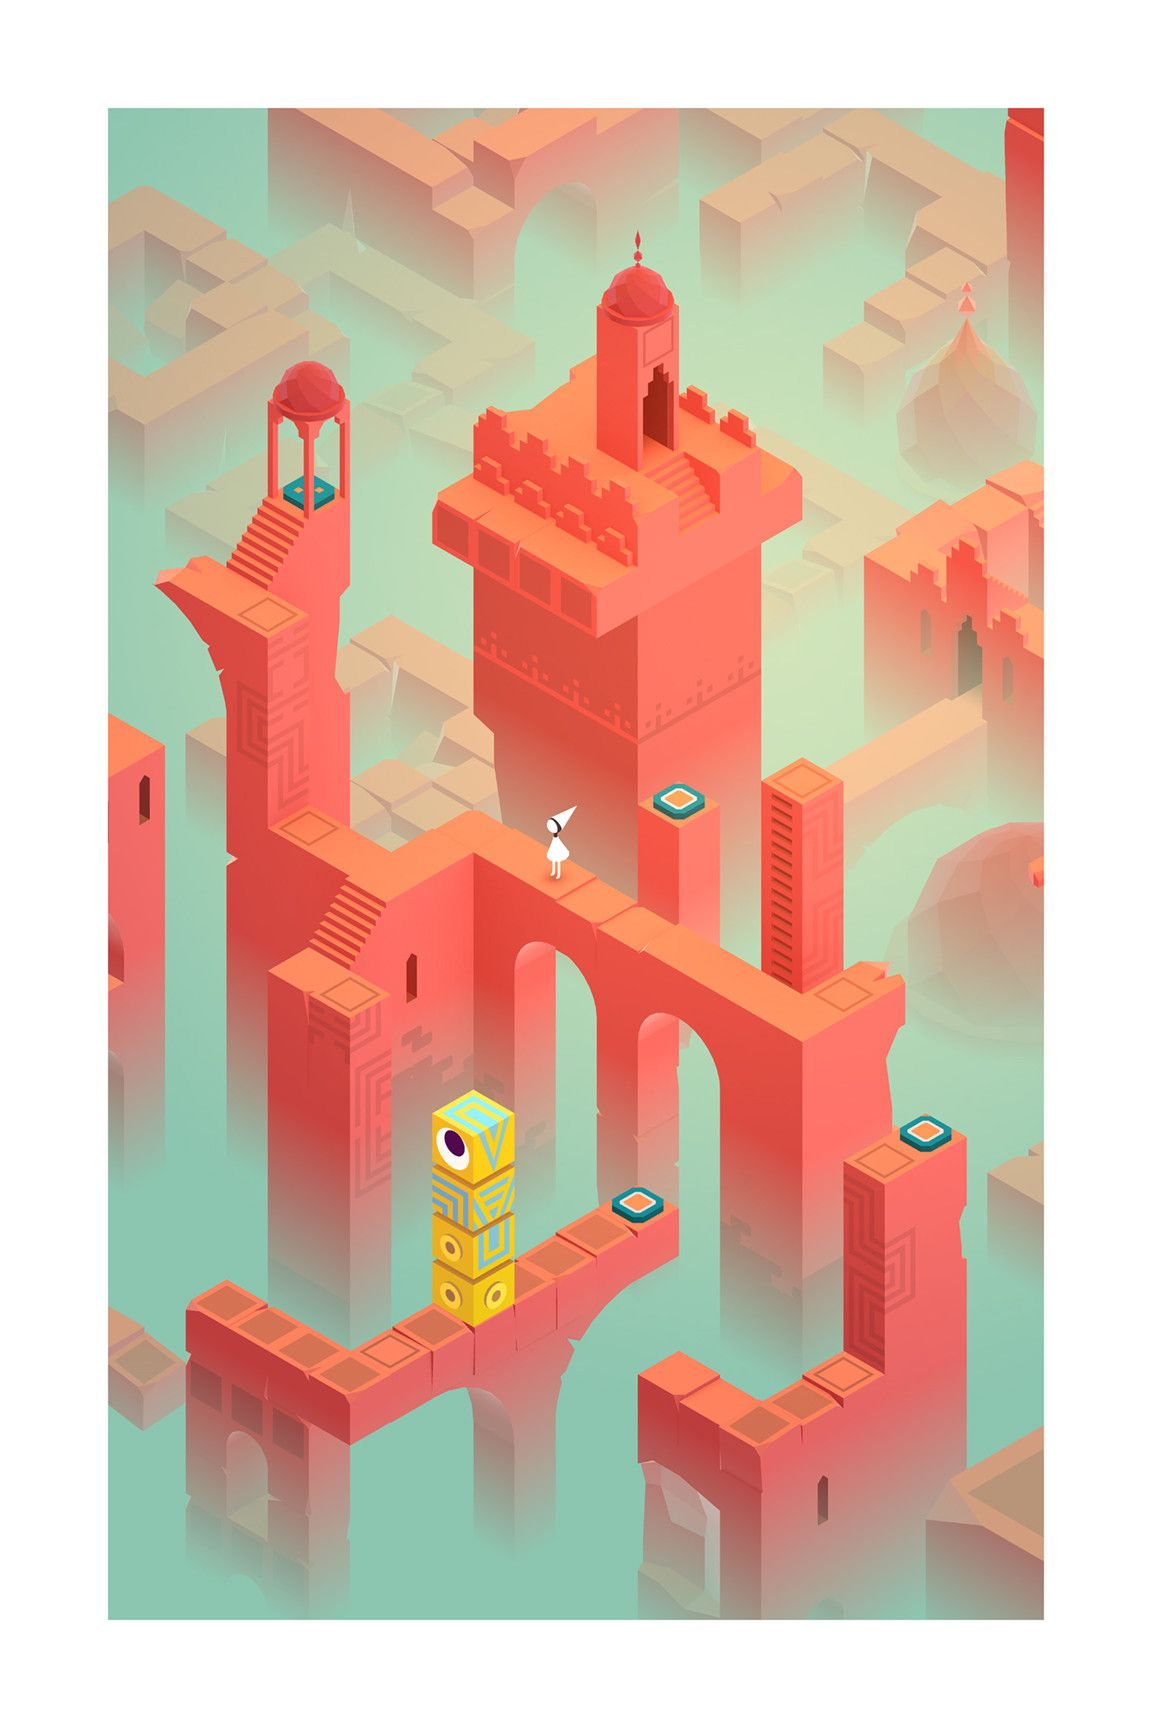 Fort With Images Monument Valley App Monument Valley Game